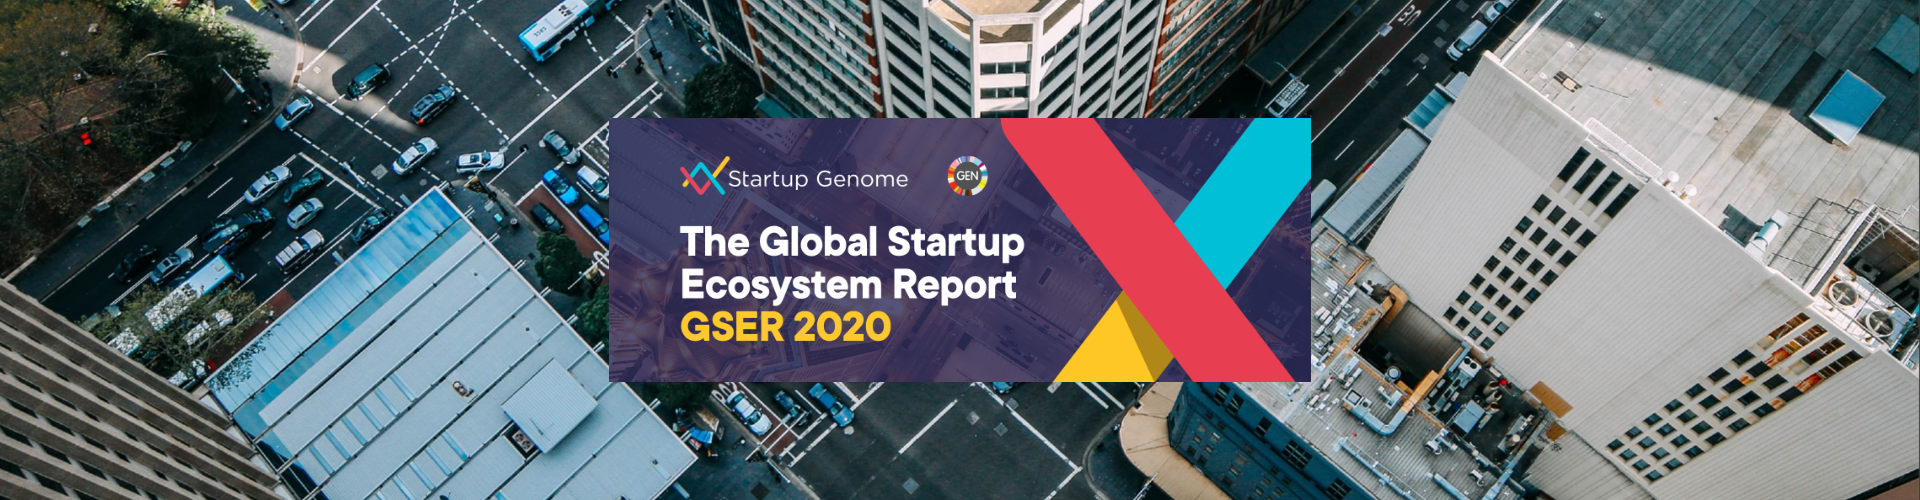 Global Startup Ecosystem Report